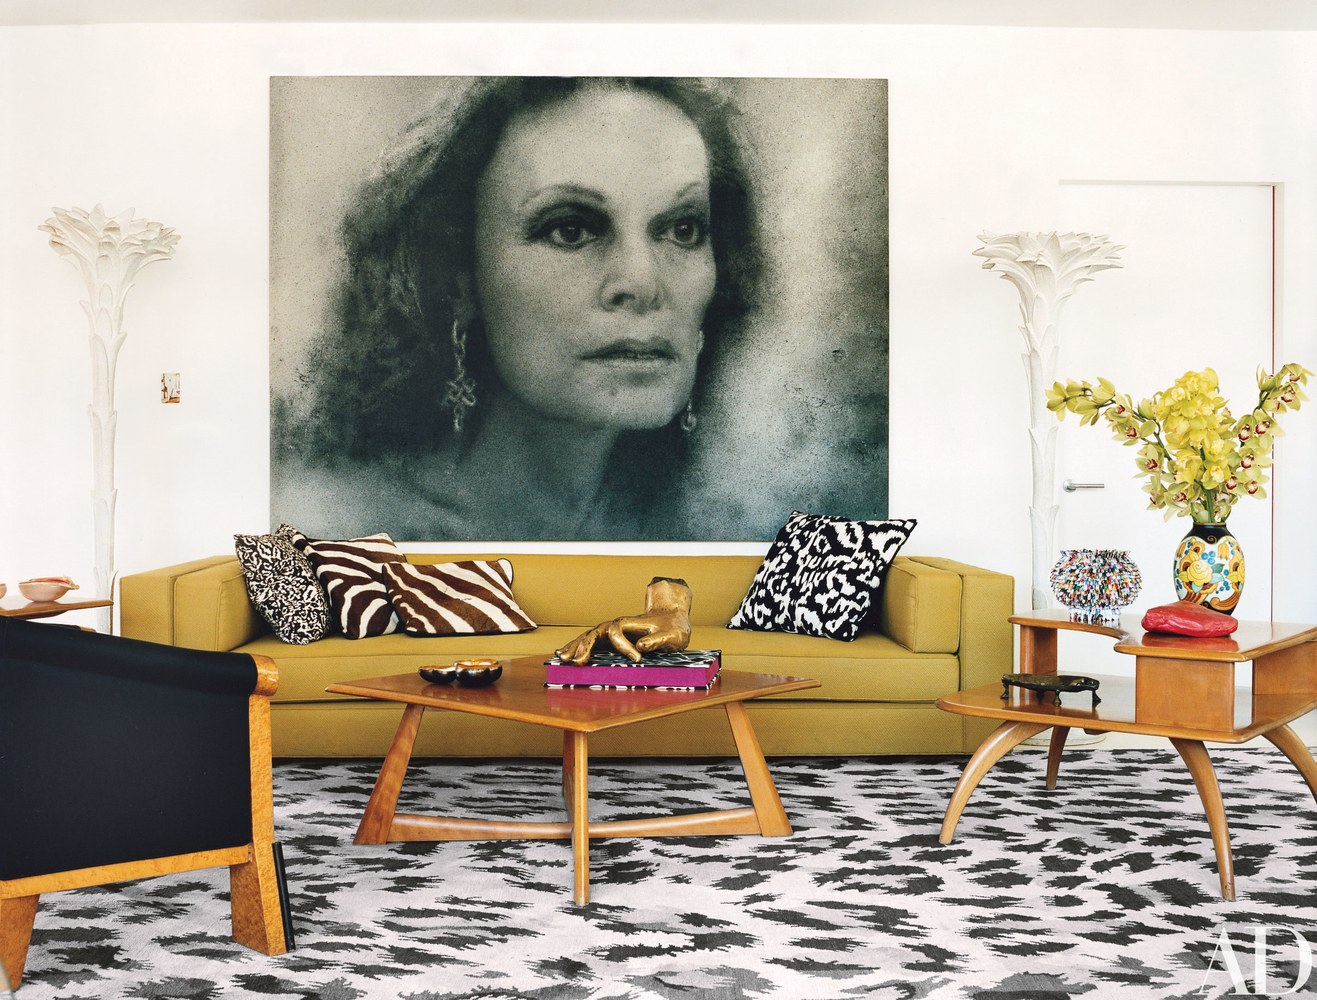 How to Use Animal Prints in Your Living Room Decor 1 living room decor How to Use Animal Prints in Your Living Room Decor How to Use Animal Prints in Your Living Room Decor 2